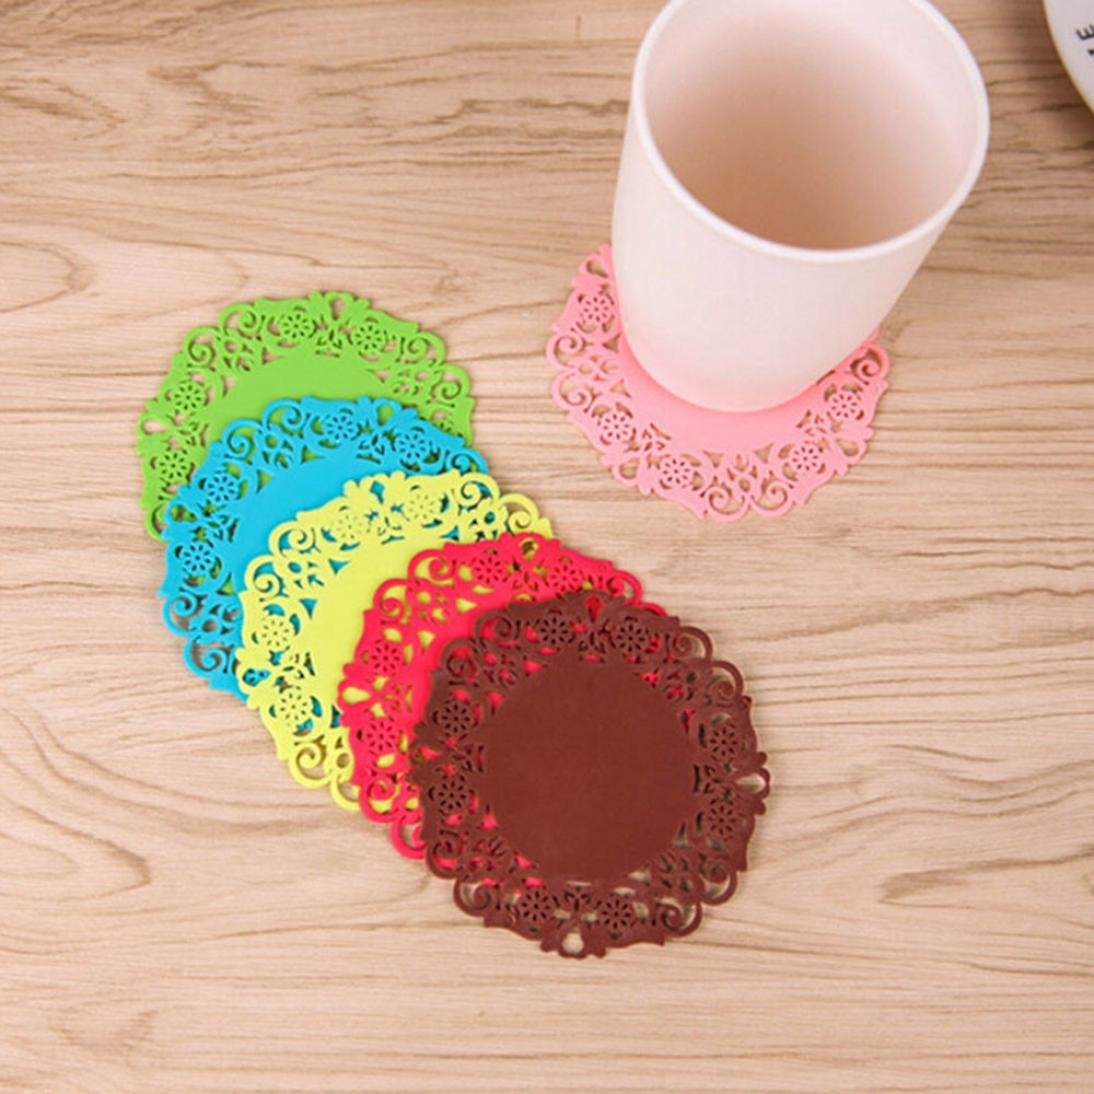 Fheaven Silicone Round Coasters, Flower Doilies Silicone Coaster Tea Cup Holder Coffee Mug Place Mats Pad Insulation Lacework Placemat Lau (A) by Fheaven (Image #1)